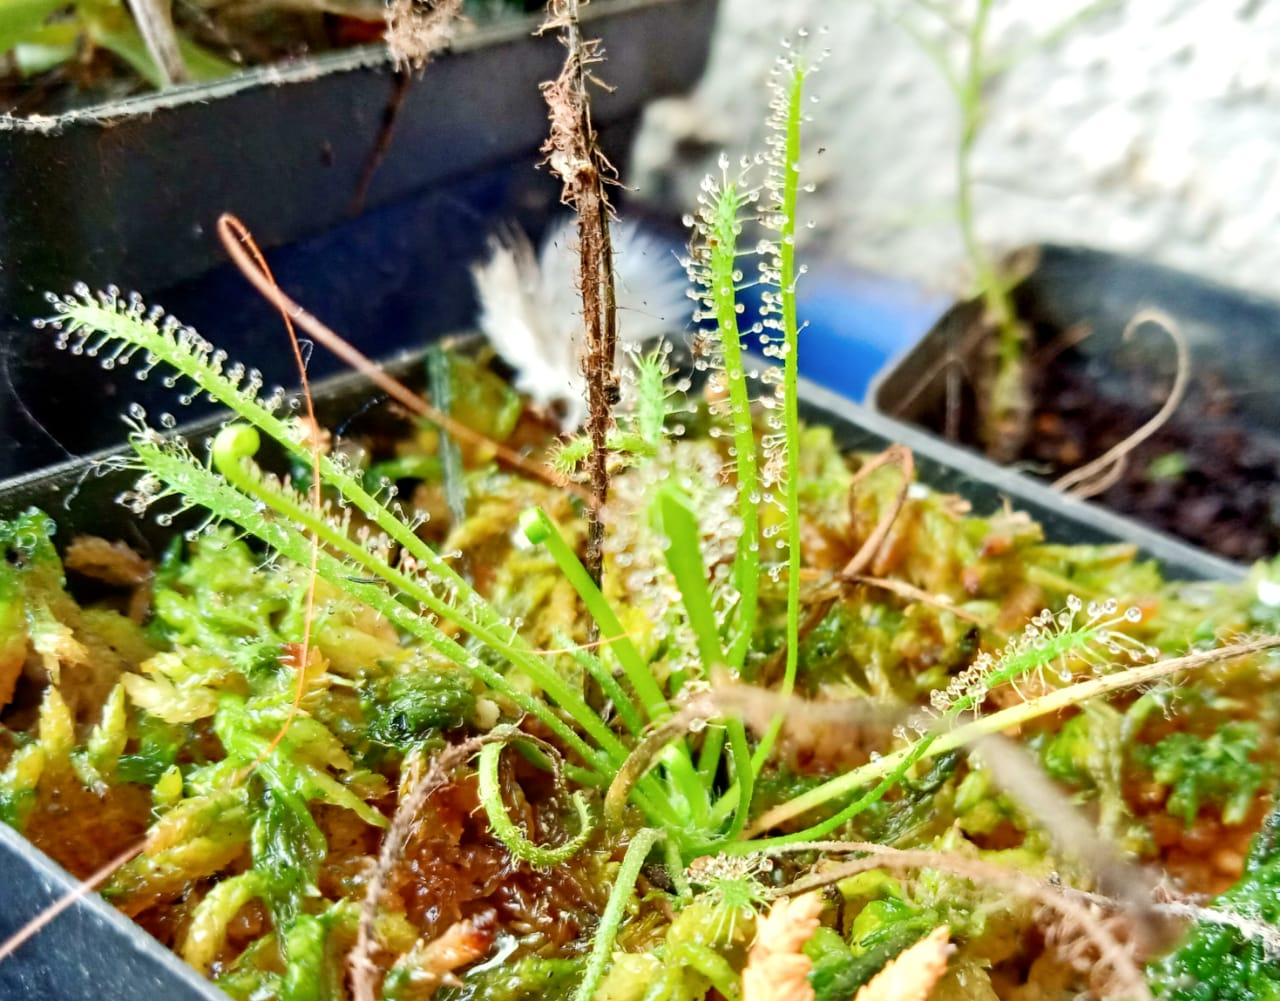 Buying and growing carnivorous plants in India